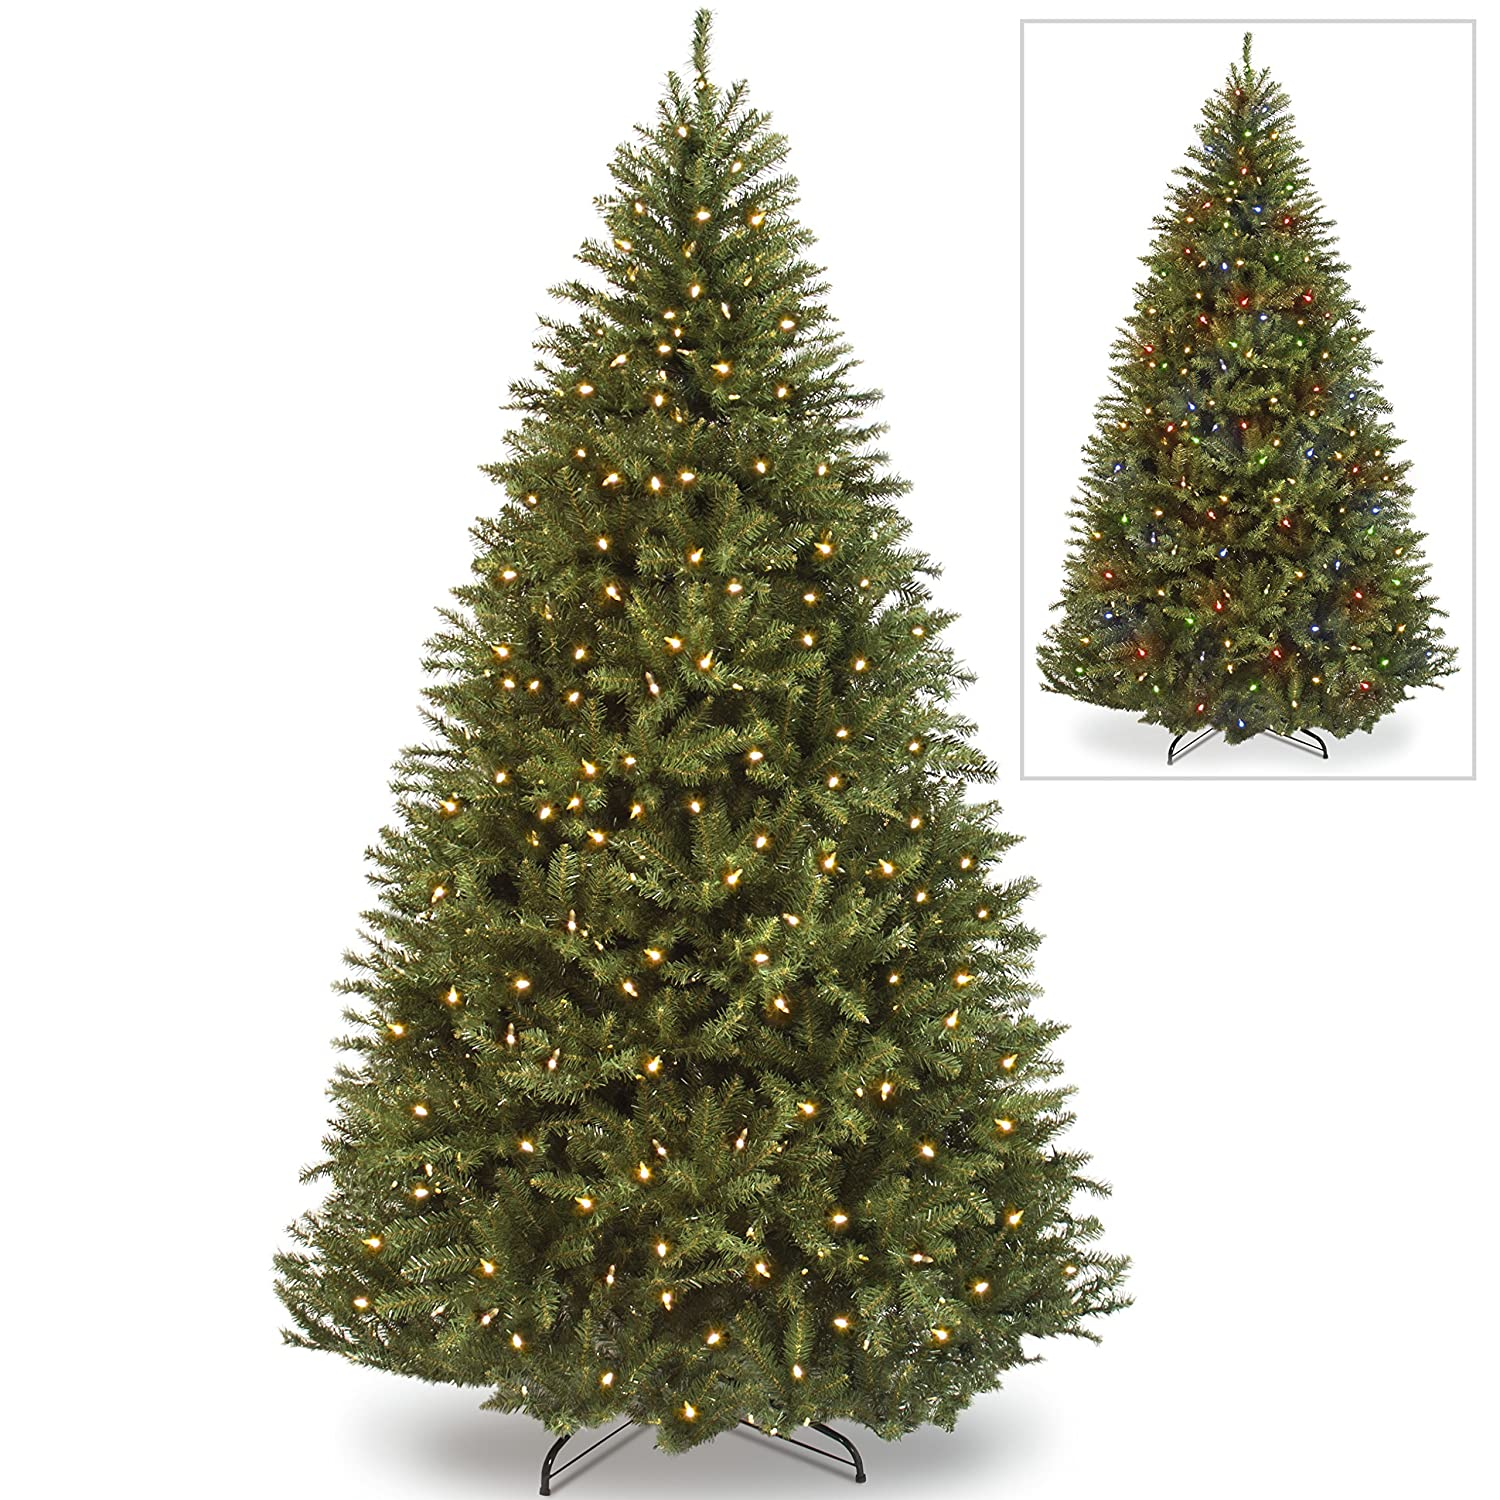 Best Deals On Artificial Christmas Trees.Best Choice Products Sky2854 7 5ft Pre Lit Fir Hinged Artificial Christmas Tree W 700 Dual Colored Led Adjustable White And Multicolored Lights 7